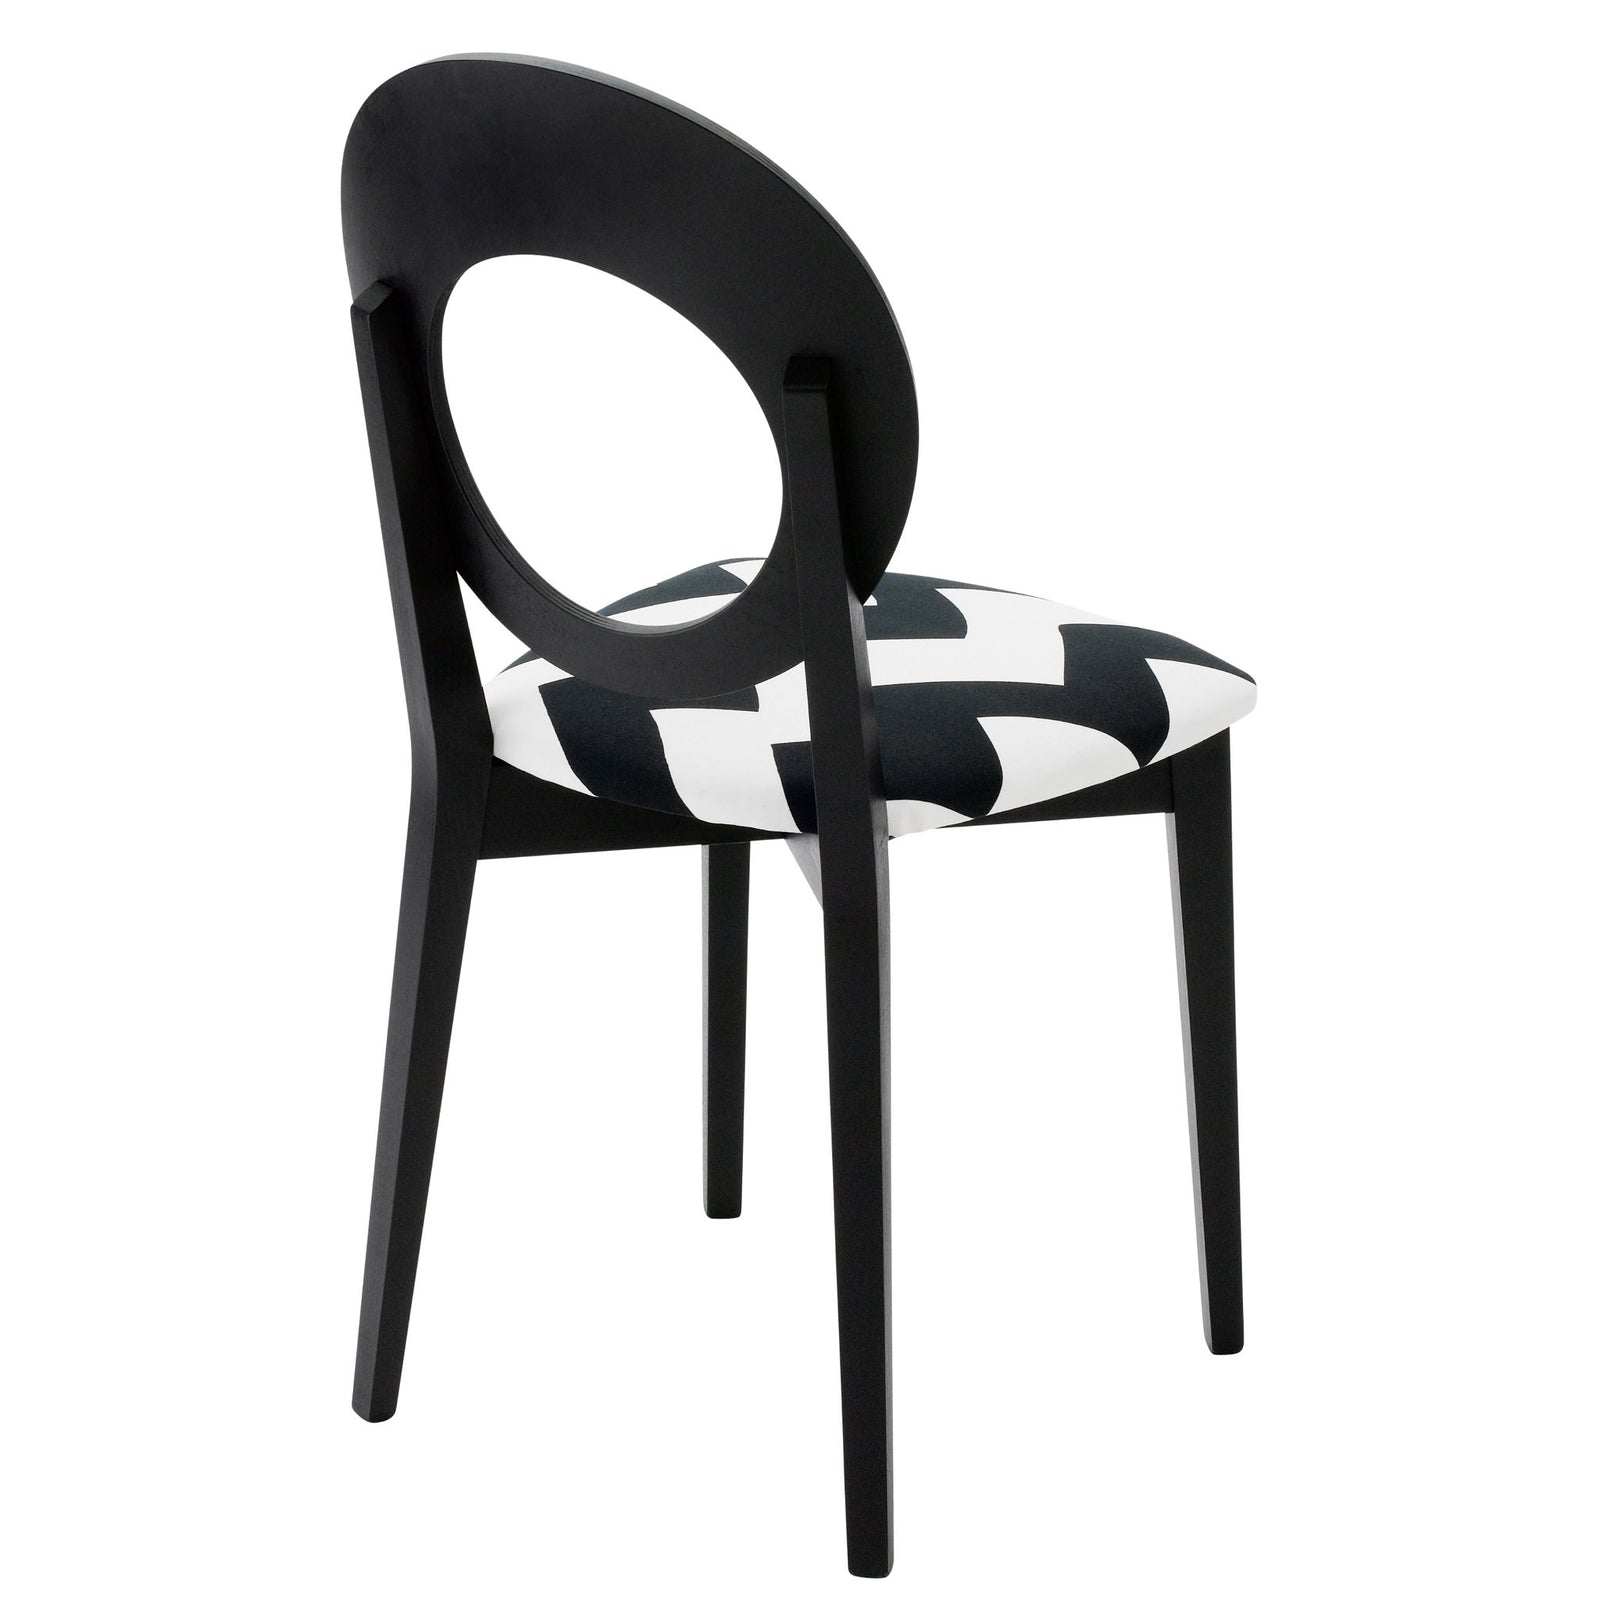 Chloe Contemporary Occasion Chair Upholstered in Tizzy Peaks By Jon Burgerman